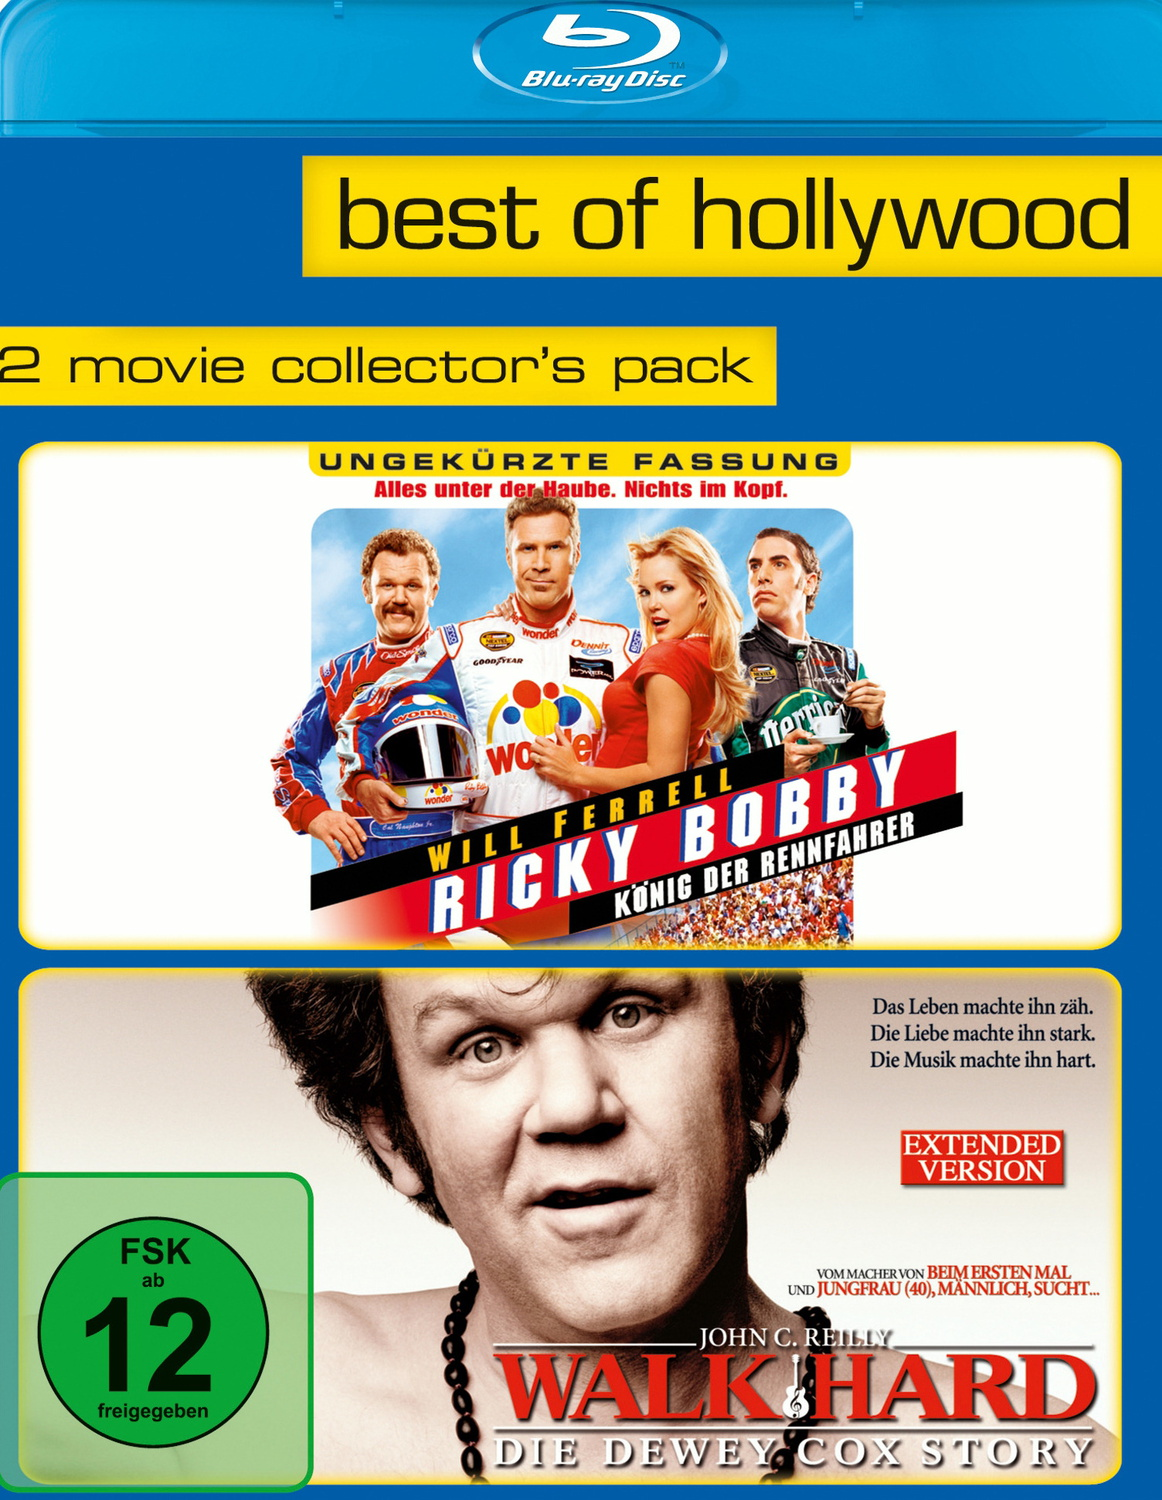 Best of Hollywood: 2 Movie Coll. 3 Ricky Bobby-König der Rennfahrer/Walk Hard-Dewey Cox Story